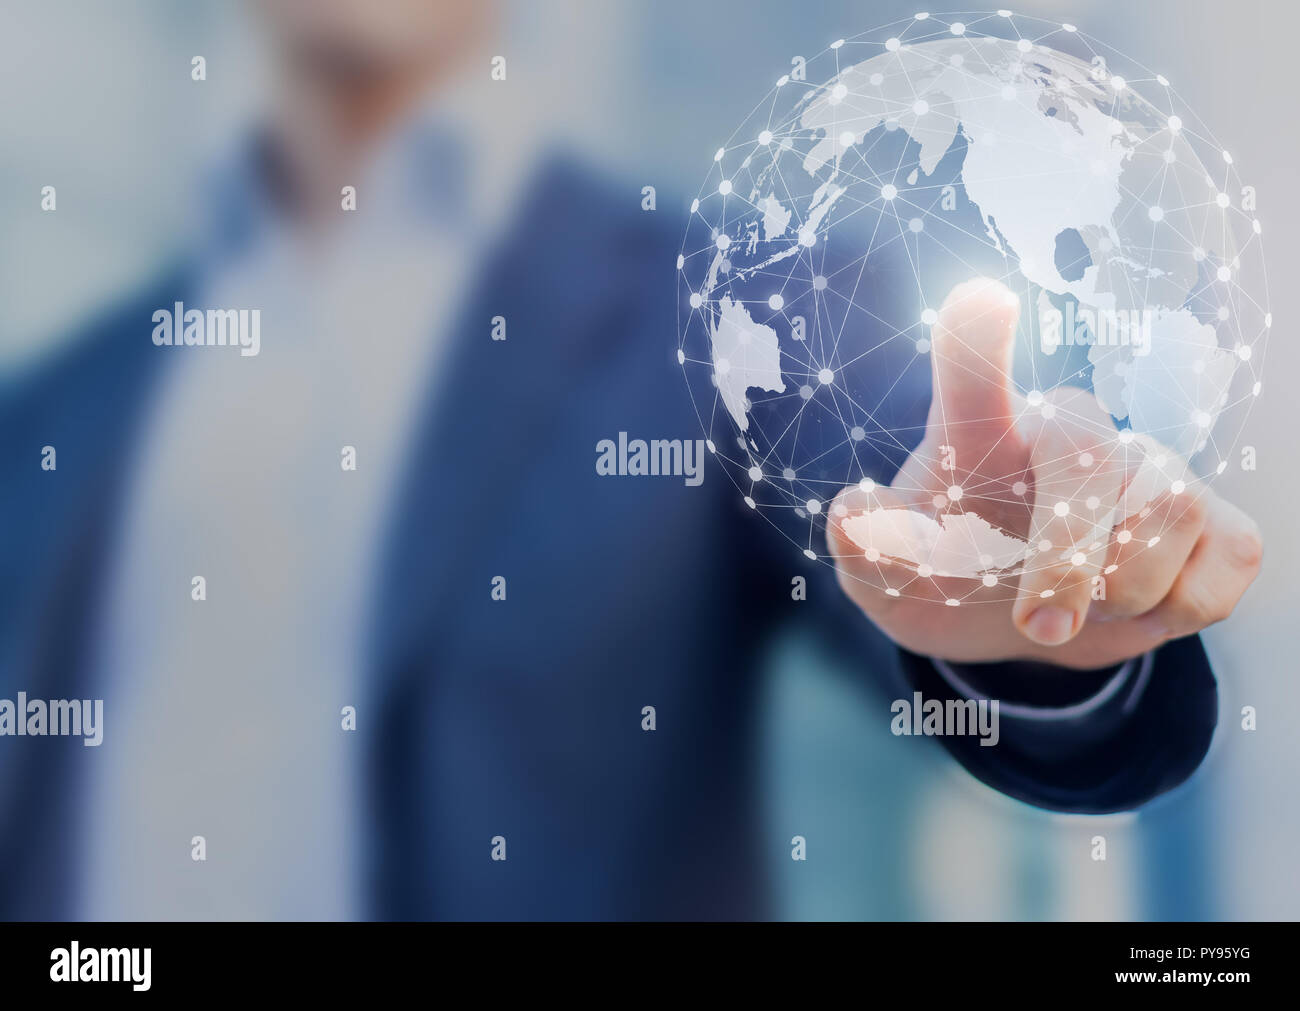 Global network communication with international connections for business around 3d world map, financial exchange, Internet of Things (IoT), blockchain - Stock Image